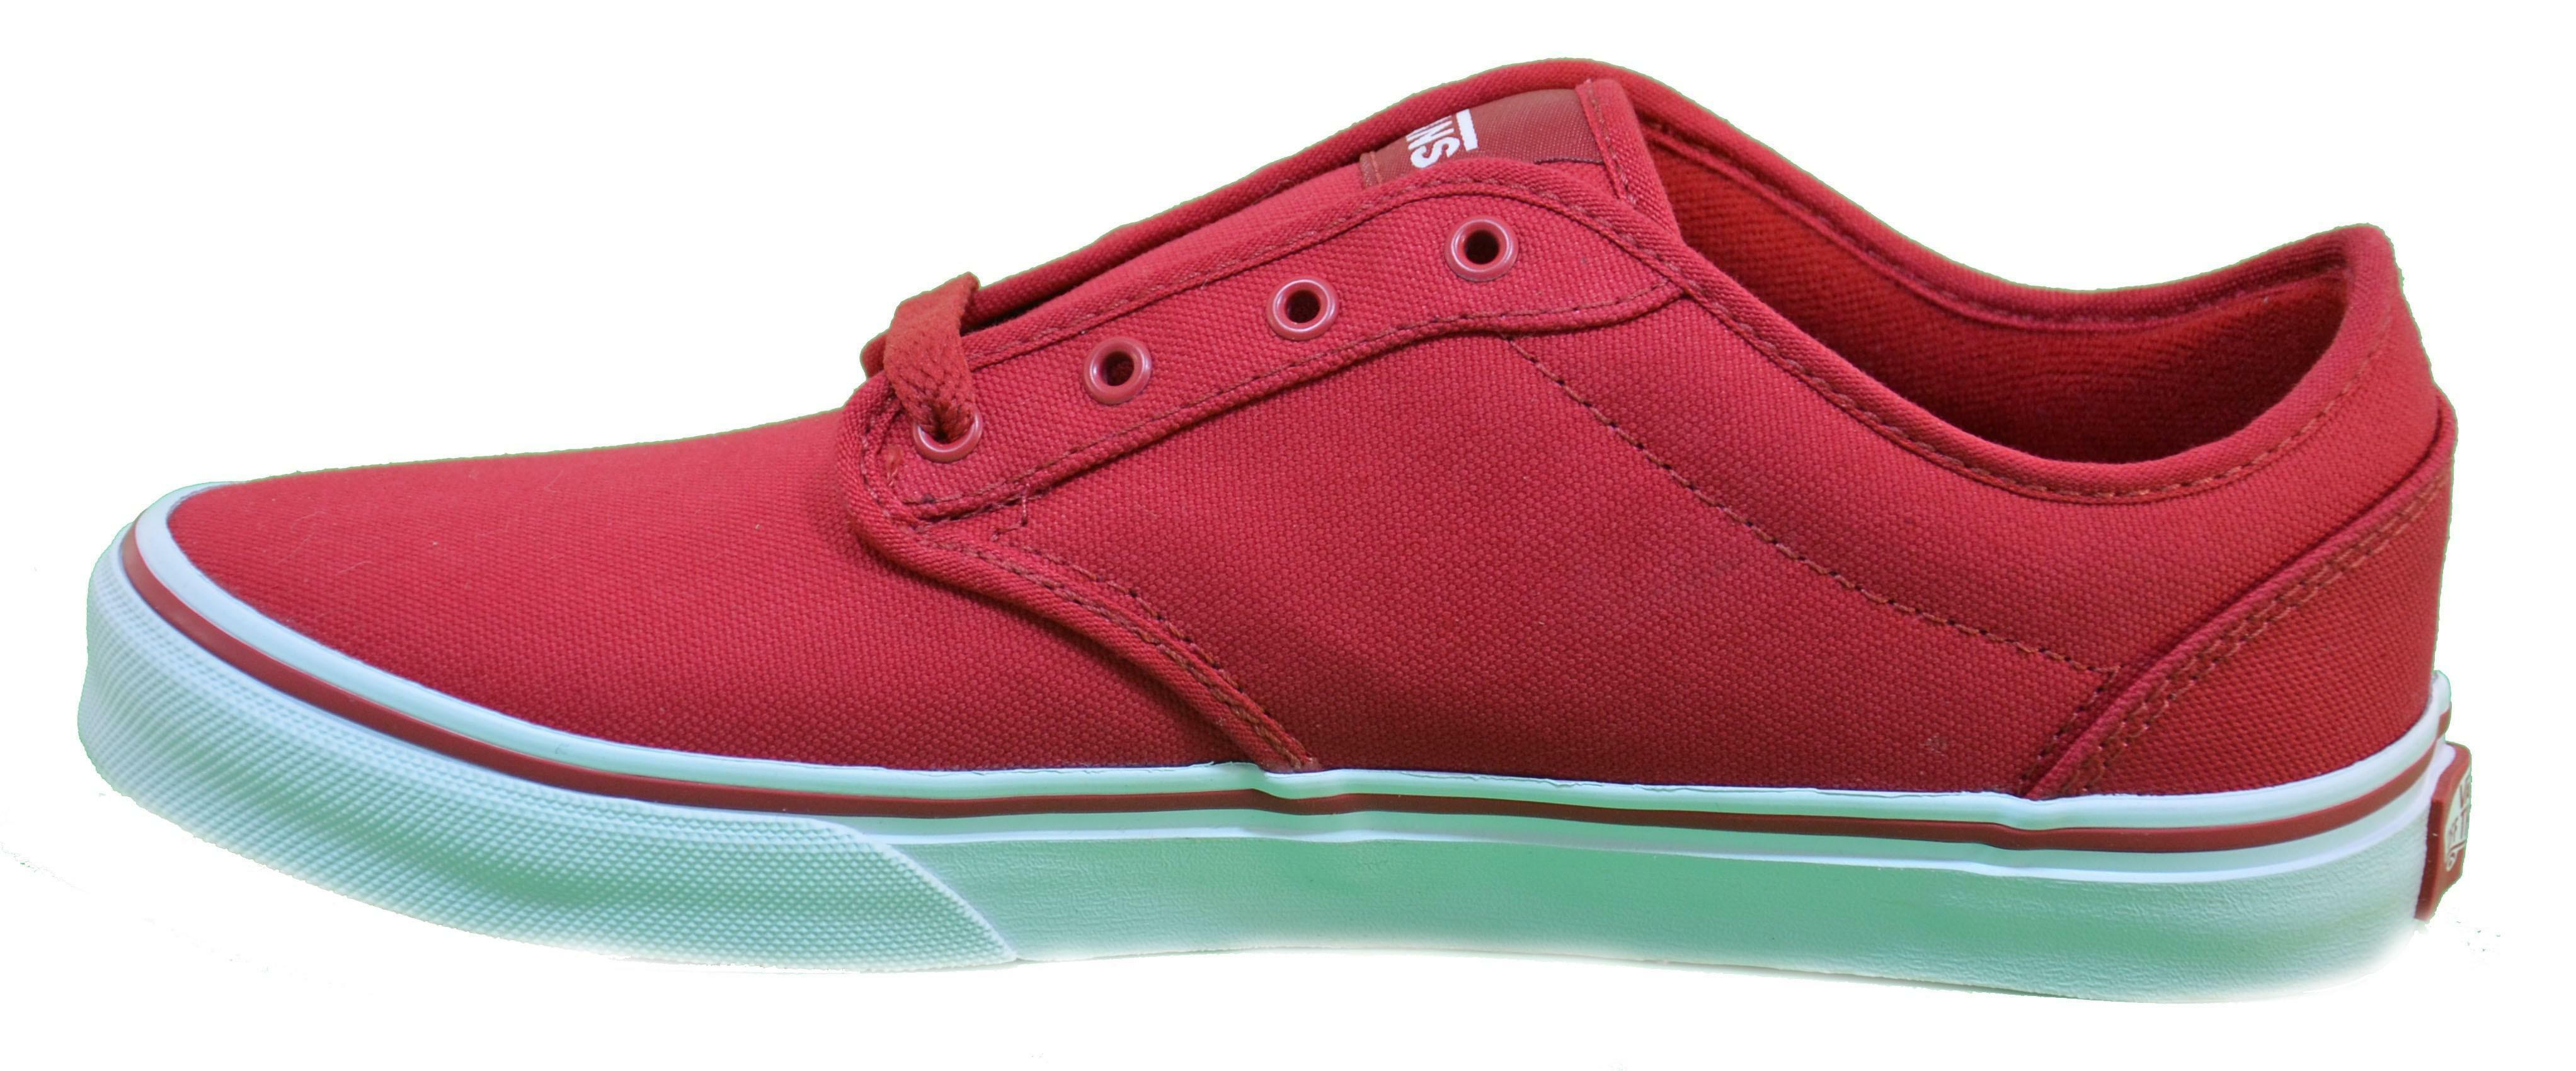 Atwood eBay Vans Atwood VANS ZNR5GH Canvas pour Red Chaussures enfants R7BnUwq